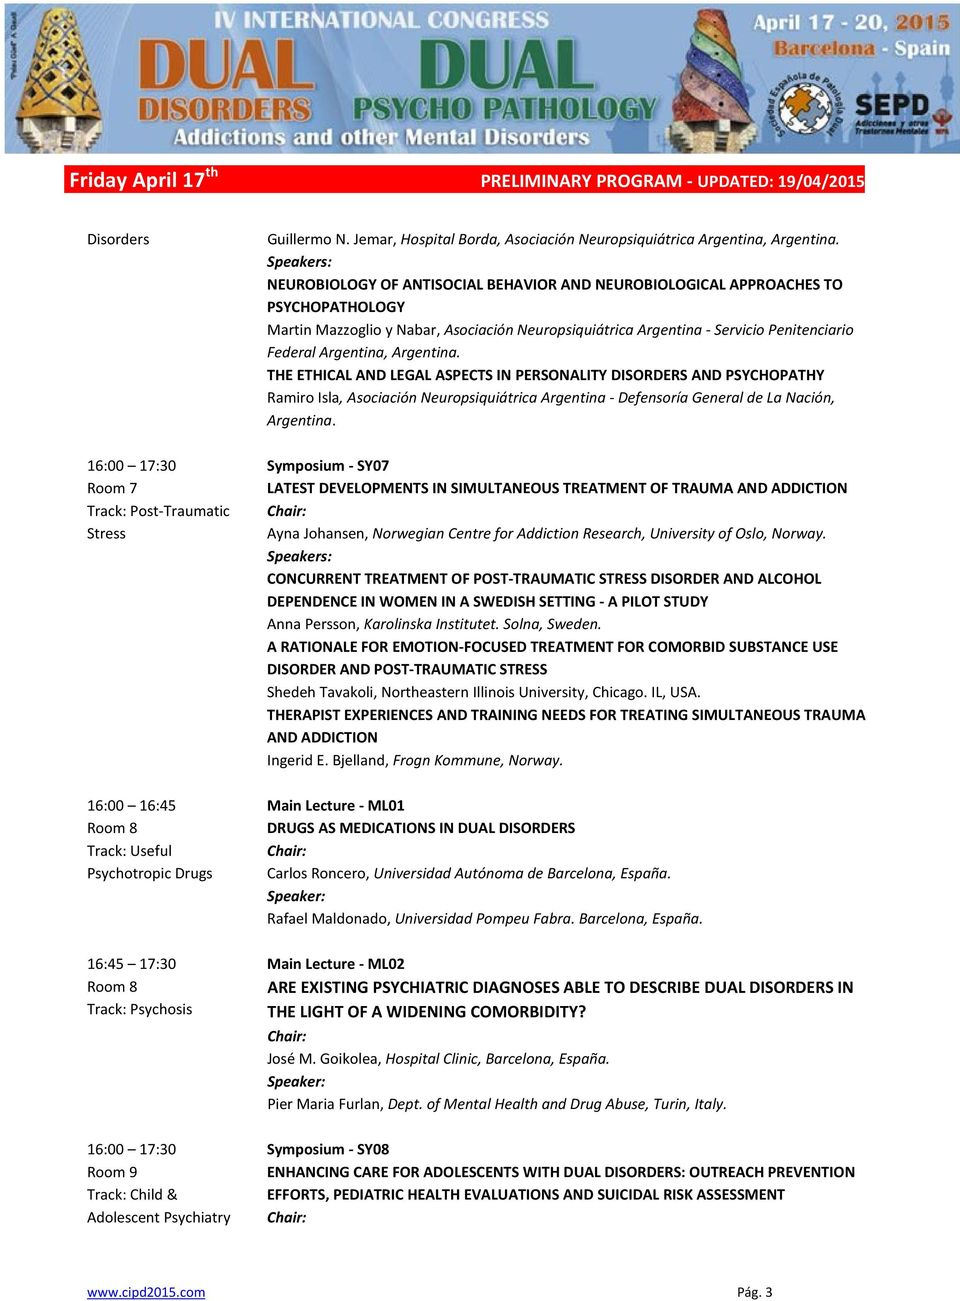 NEUROBIOLOGY OF ANTISOCIAL BEHAVIOR AND NEUROBIOLOGICAL APPROACHES TO PSYCHOPATHOLOGY Martin Mazzoglio y Nabar, Asociación Neuropsiquiátrica Argentina - Servicio Penitenciario Federal Argentina,